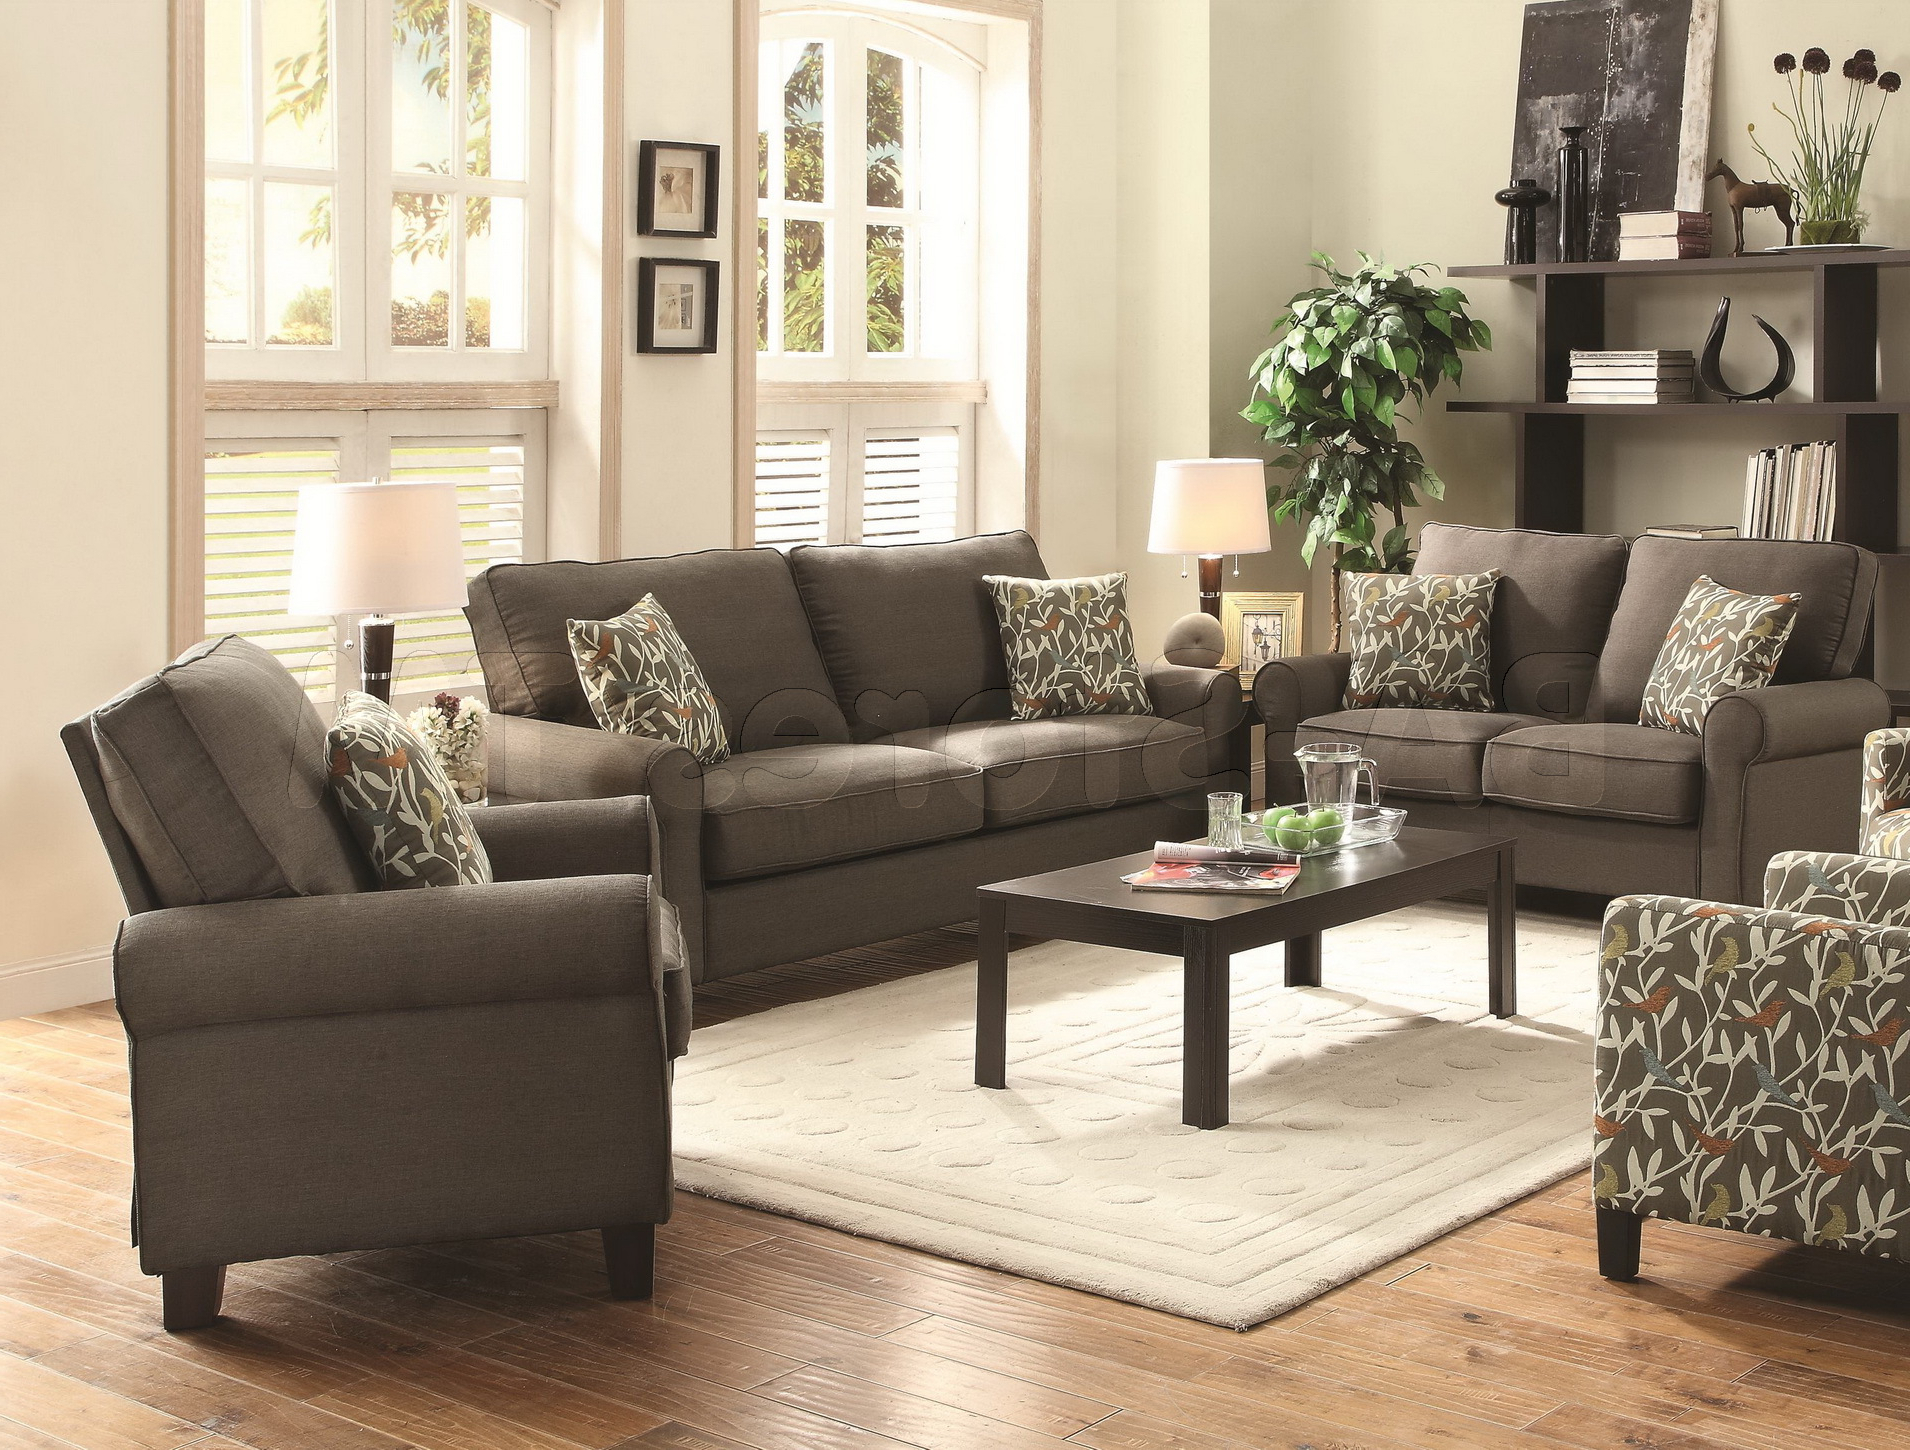 Well Known Sofa Loveseat And Chair Set In How To Find The Best Sofa Loveseat Set – Bellissimainteriors (Gallery 16 of 20)